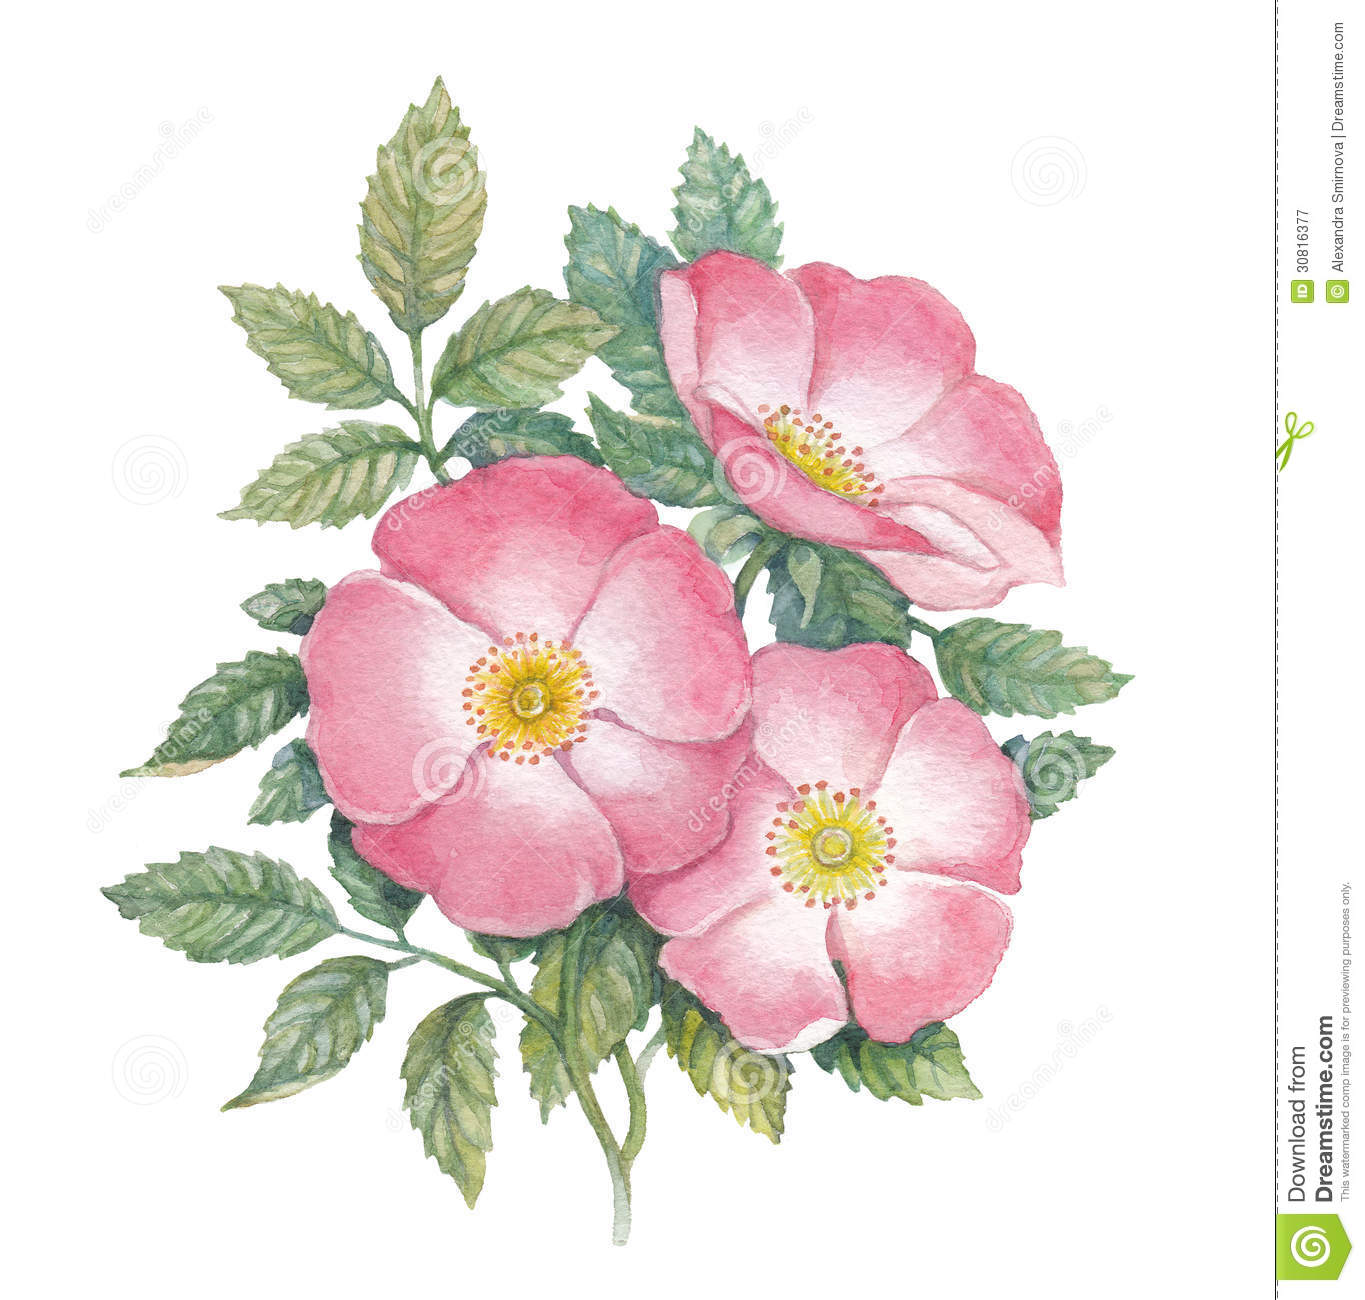 Dogrose clipart #18, Download drawings